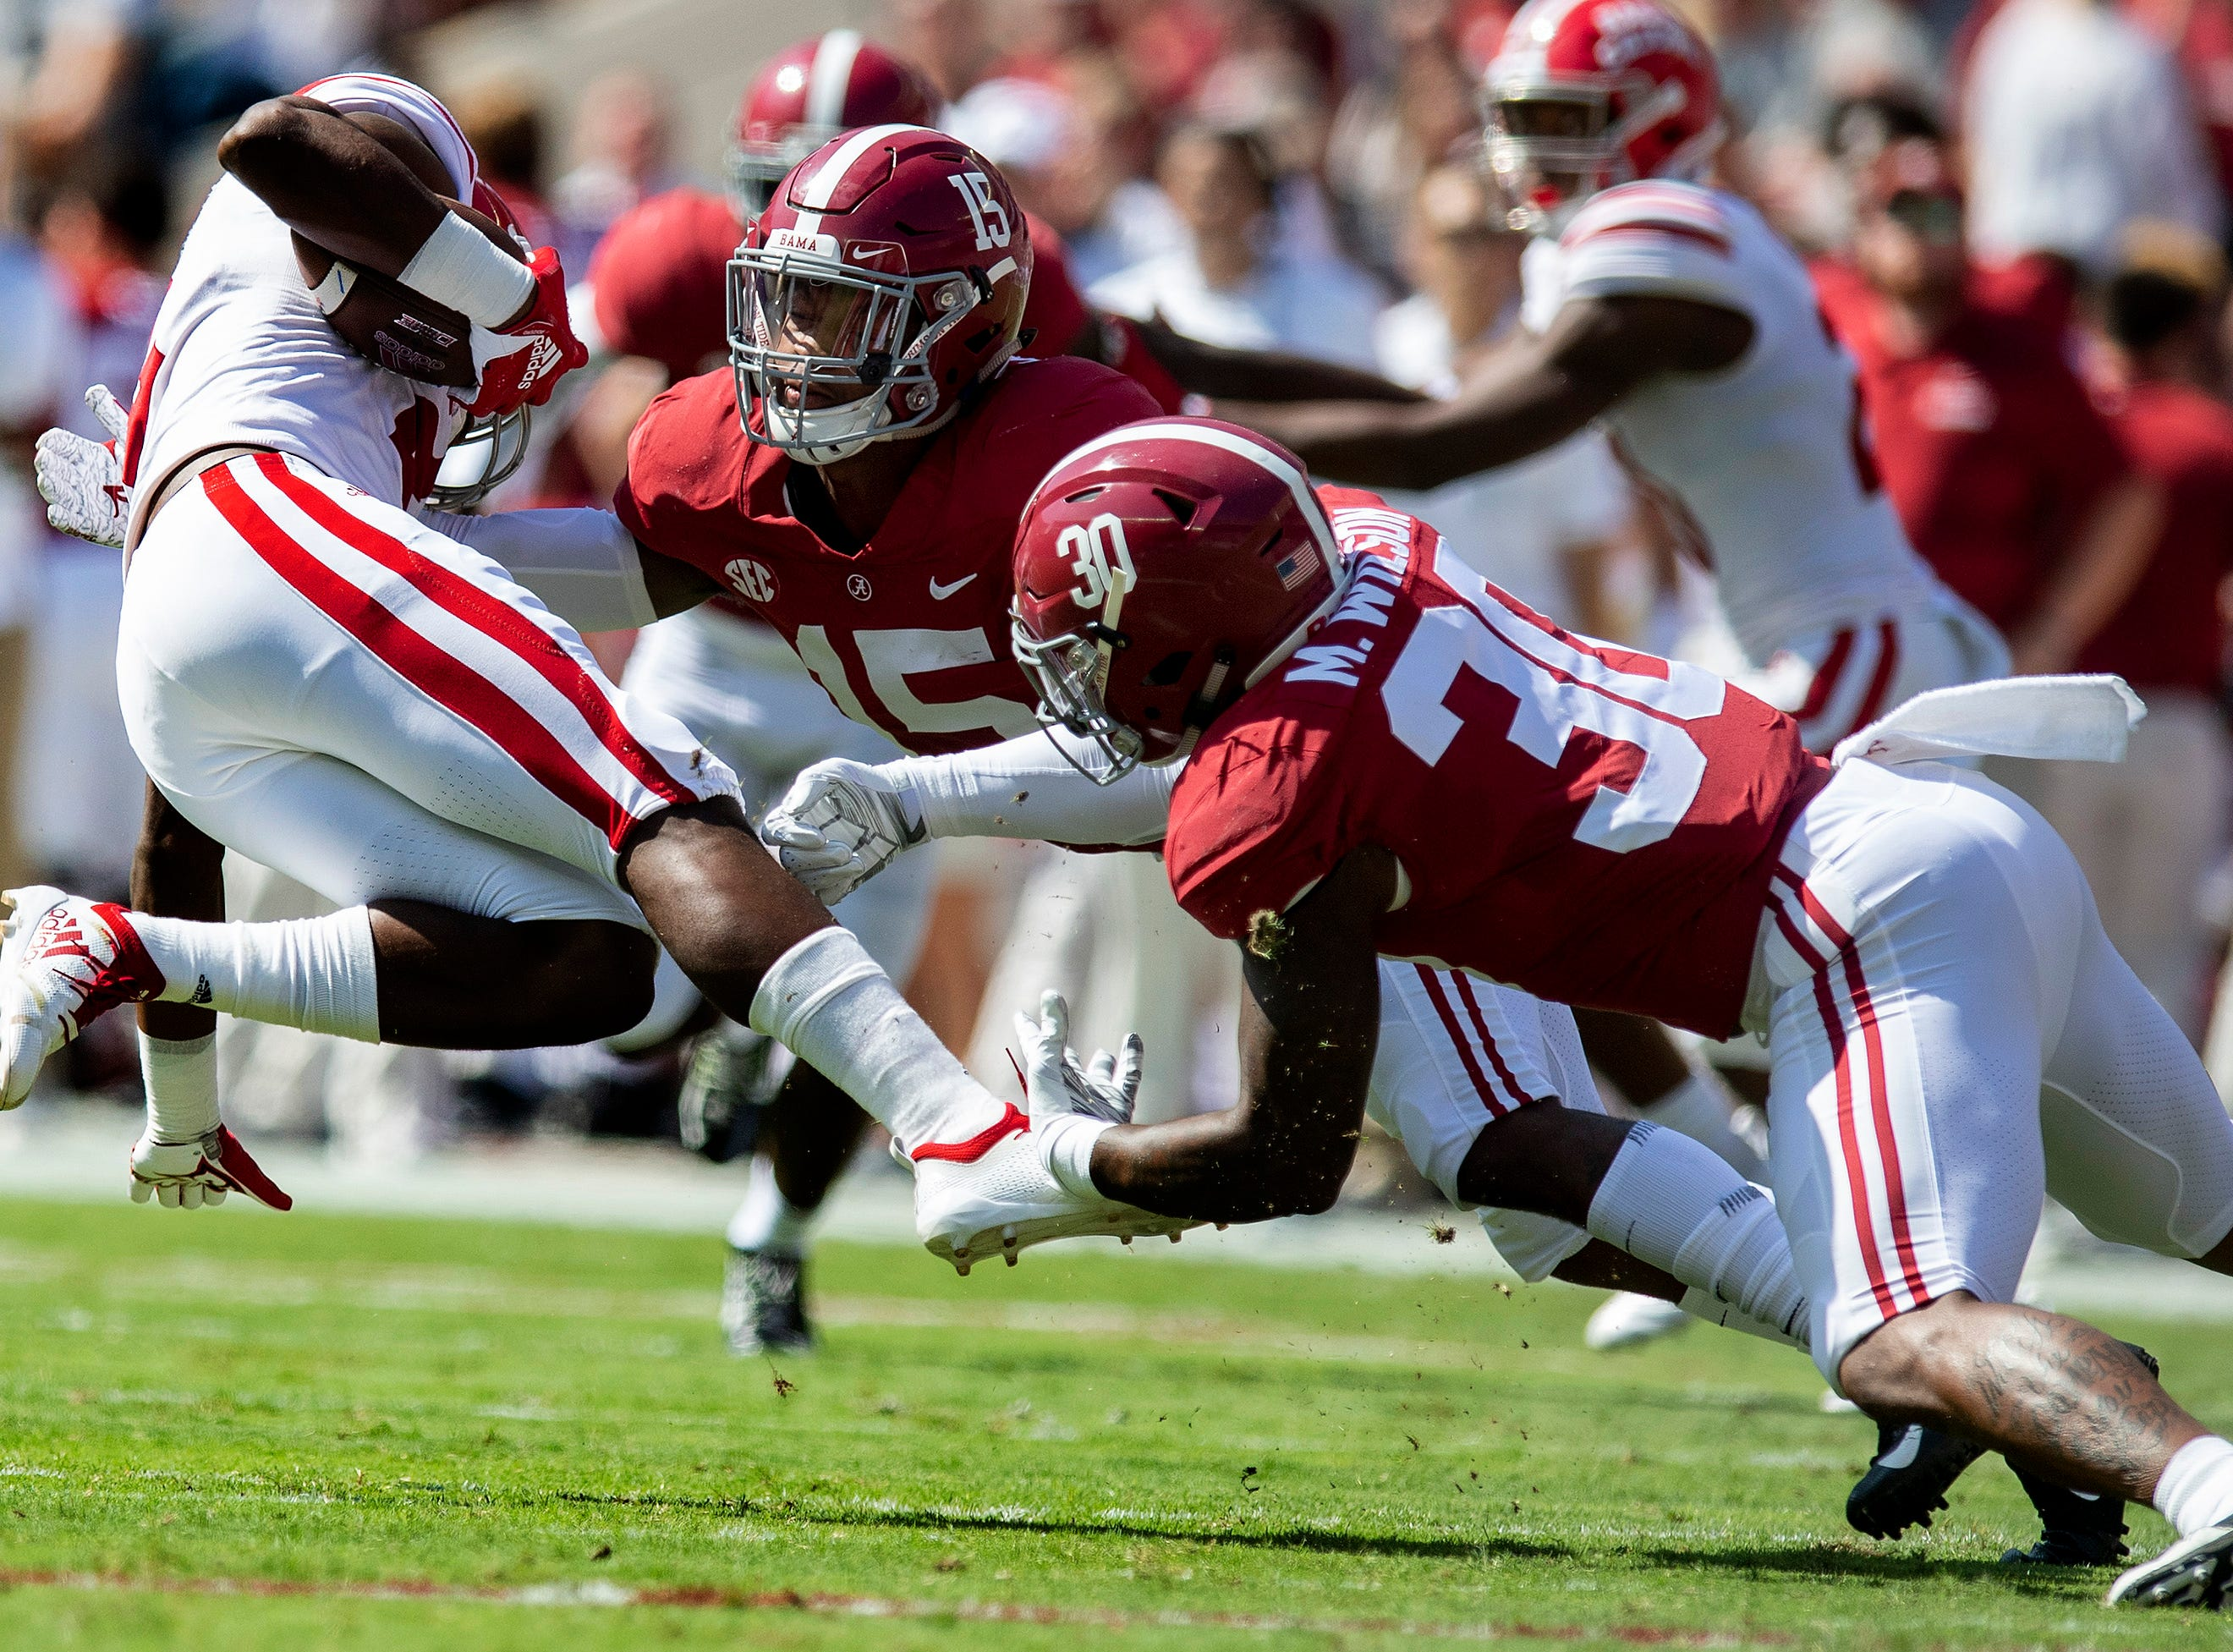 Alabama linebacker Mack Wilson (30) and defensive back Xavier McKinney (15) tackle Louisiana wide receiver Ja'Marcus (2) In first half action at Bryant-Denny Stadium in Tuscaloosa, Ala., on Saturday September 29, 2018.